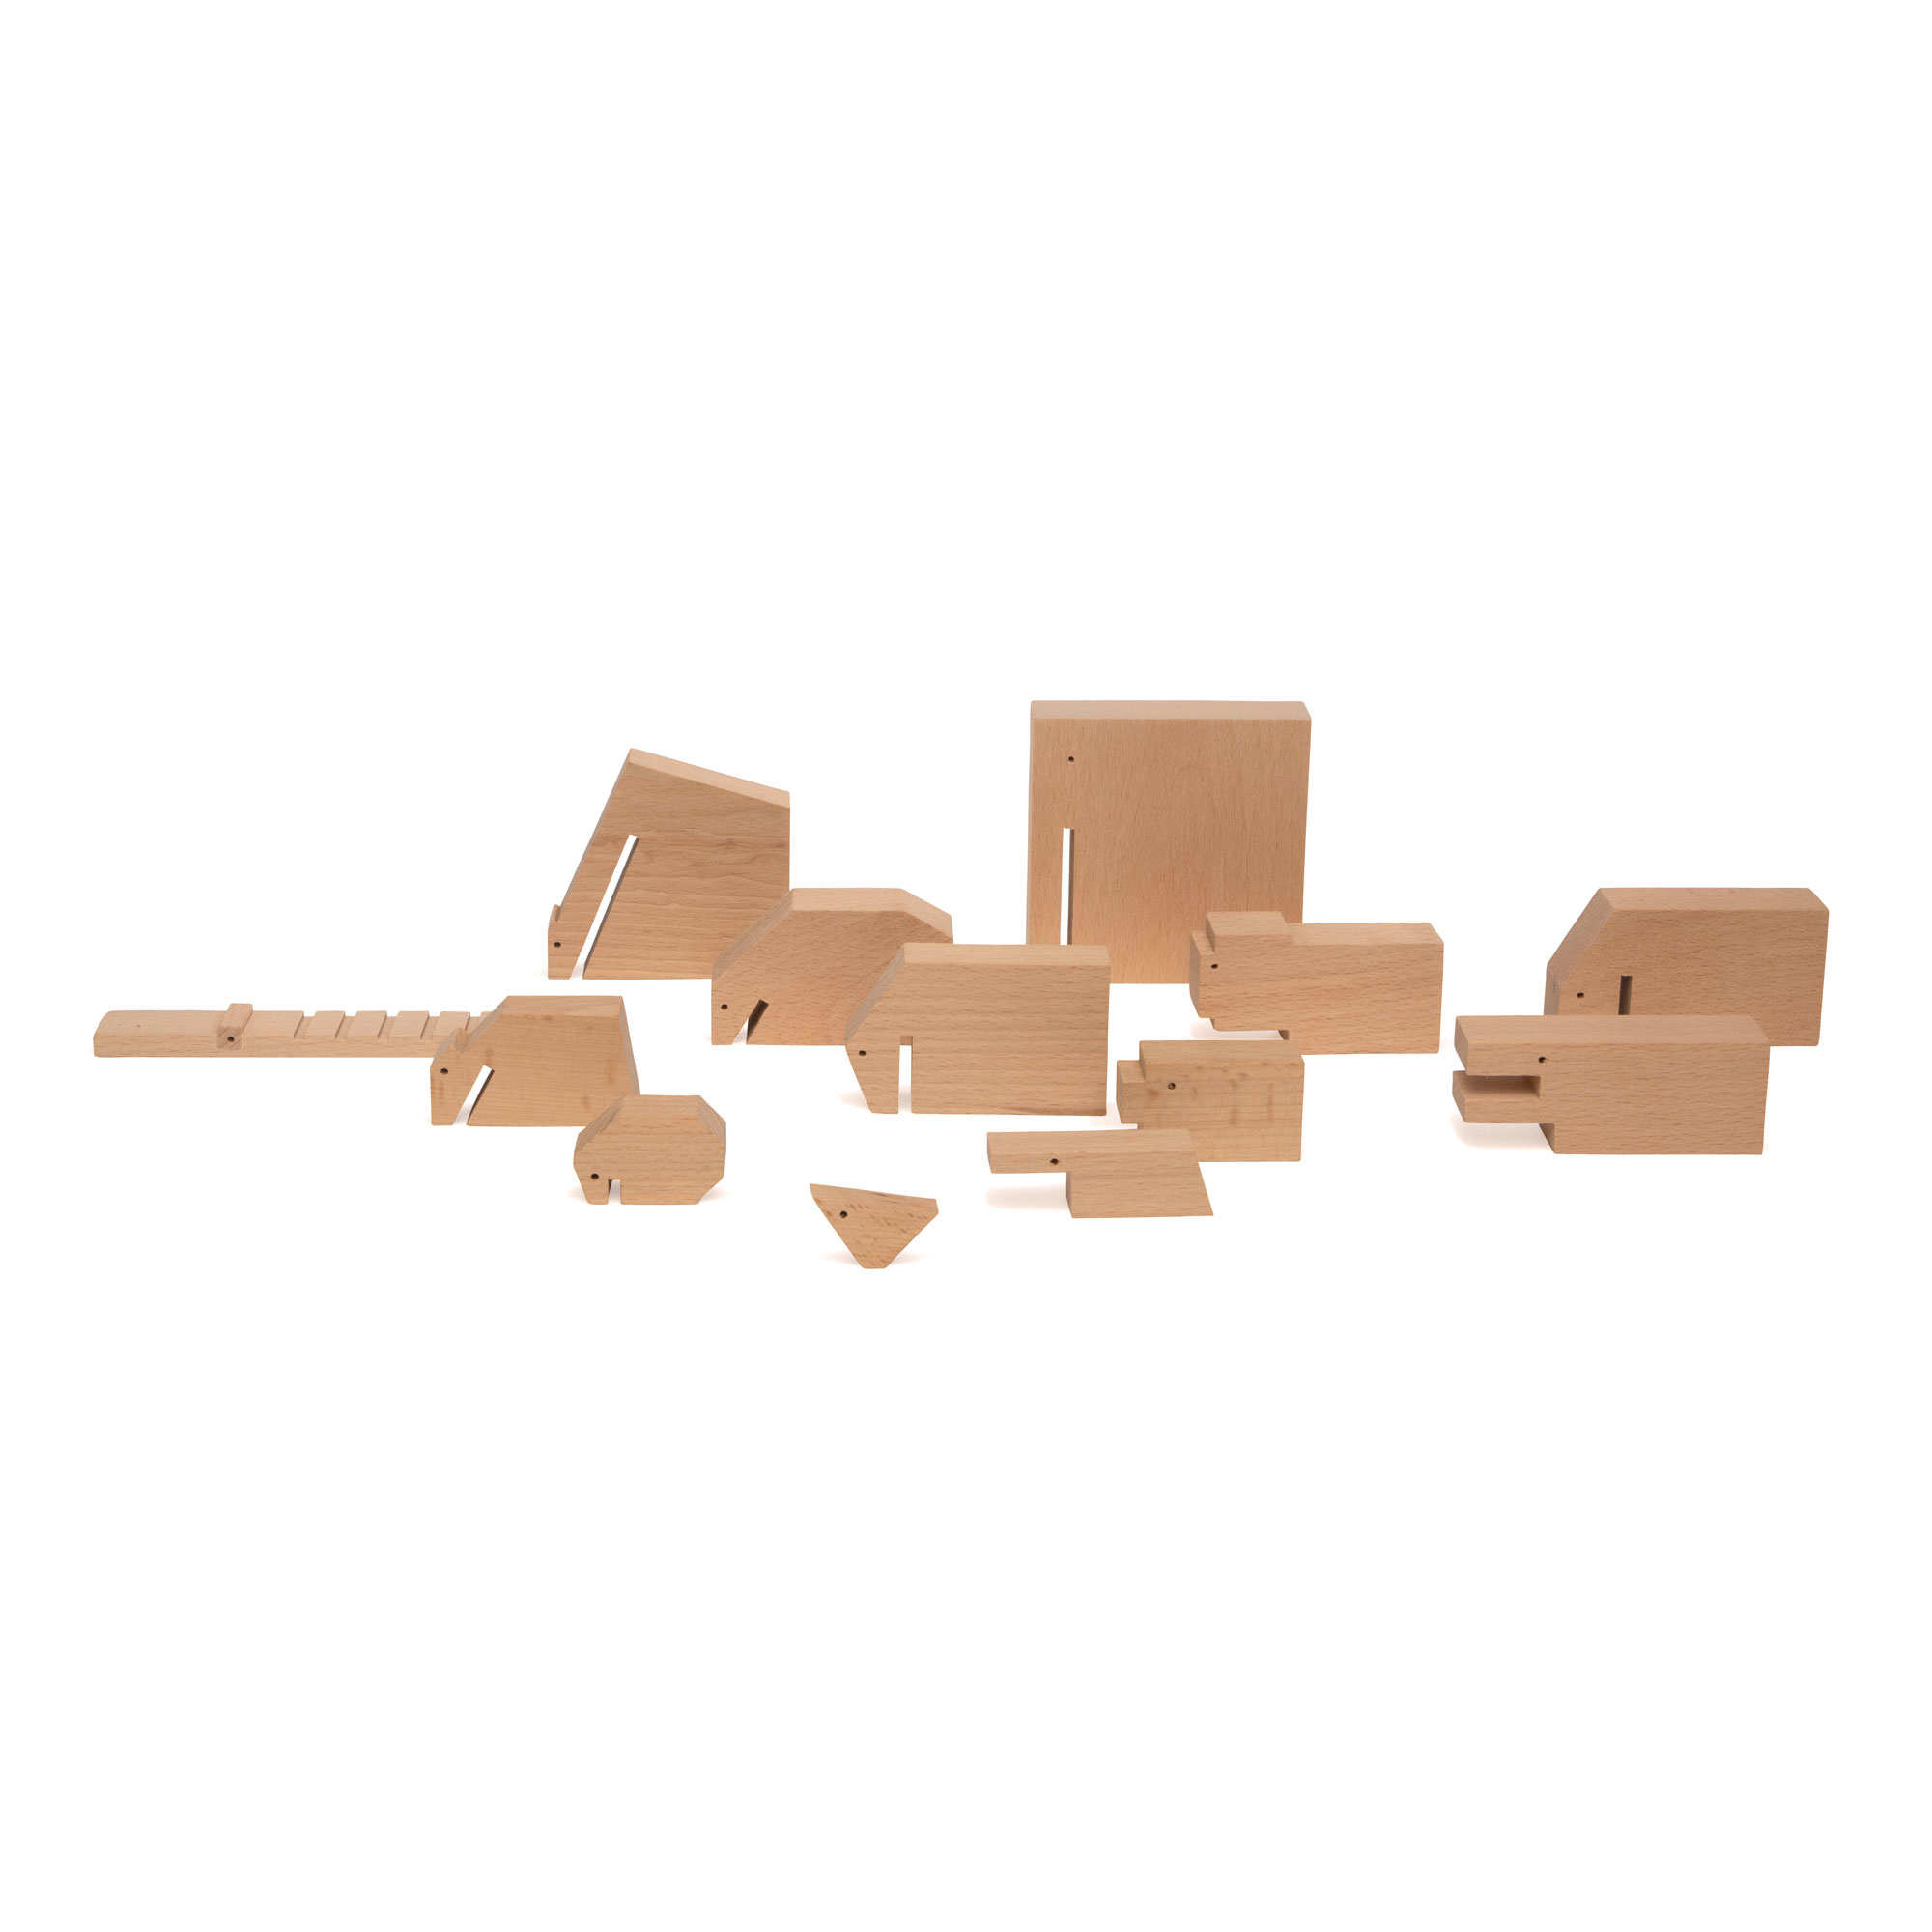 Ikonic Toys Floris Hovers Wooden Animals - wood colour